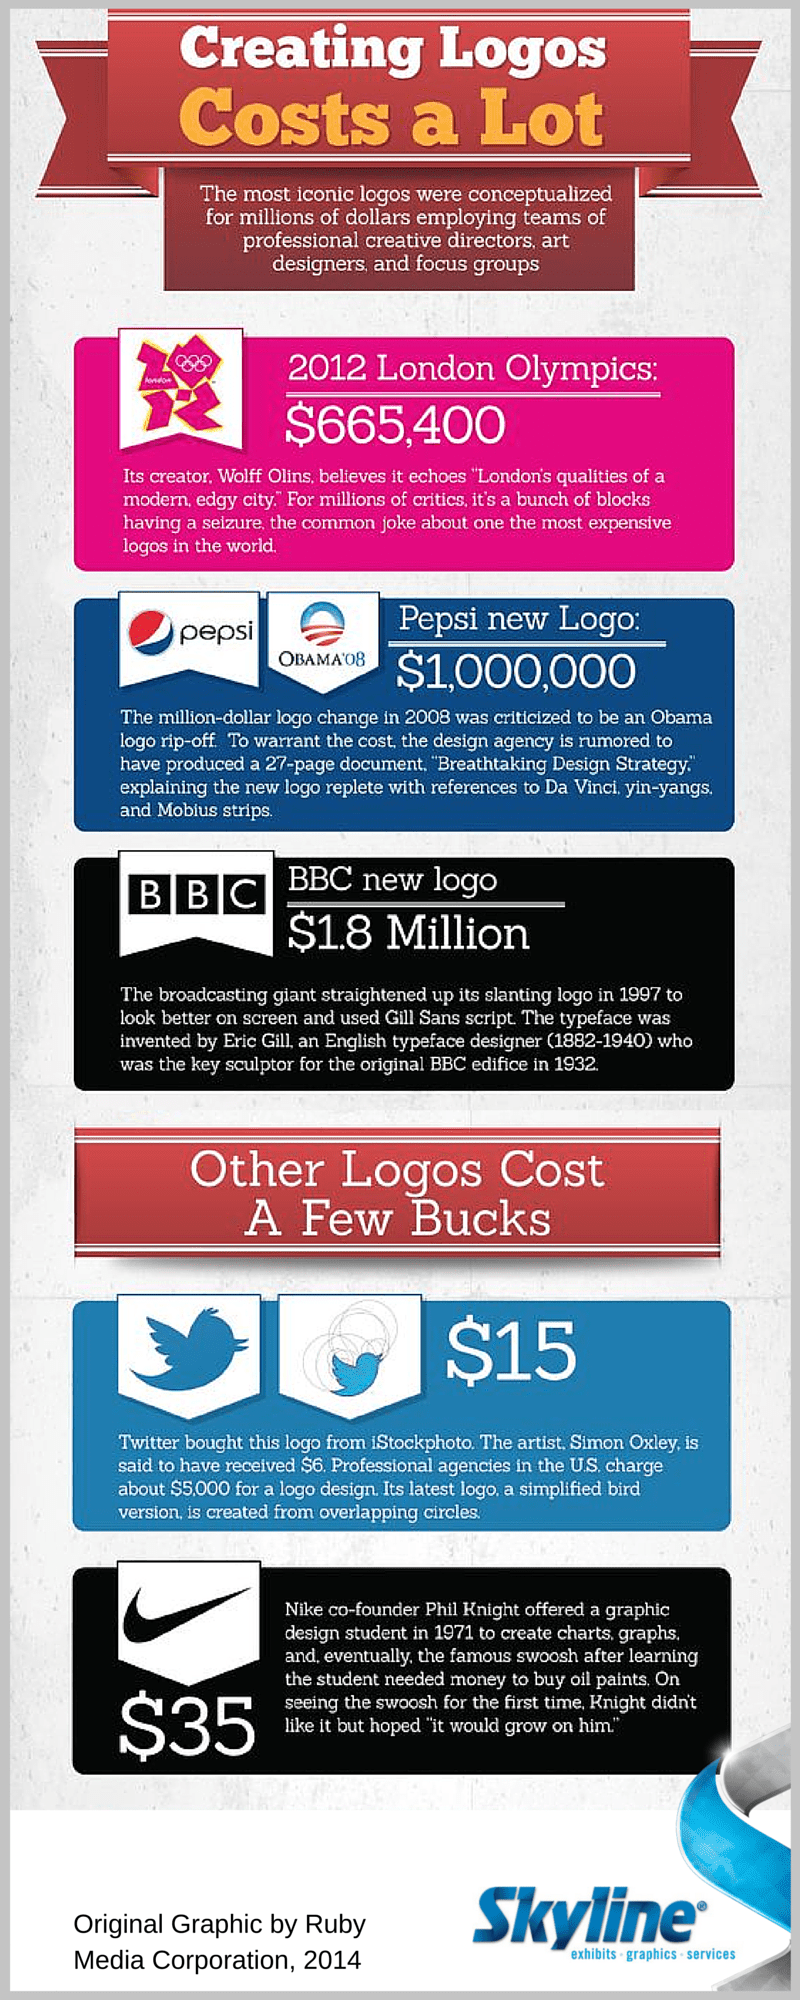 Skyline Fact Friday - Cost of Logos